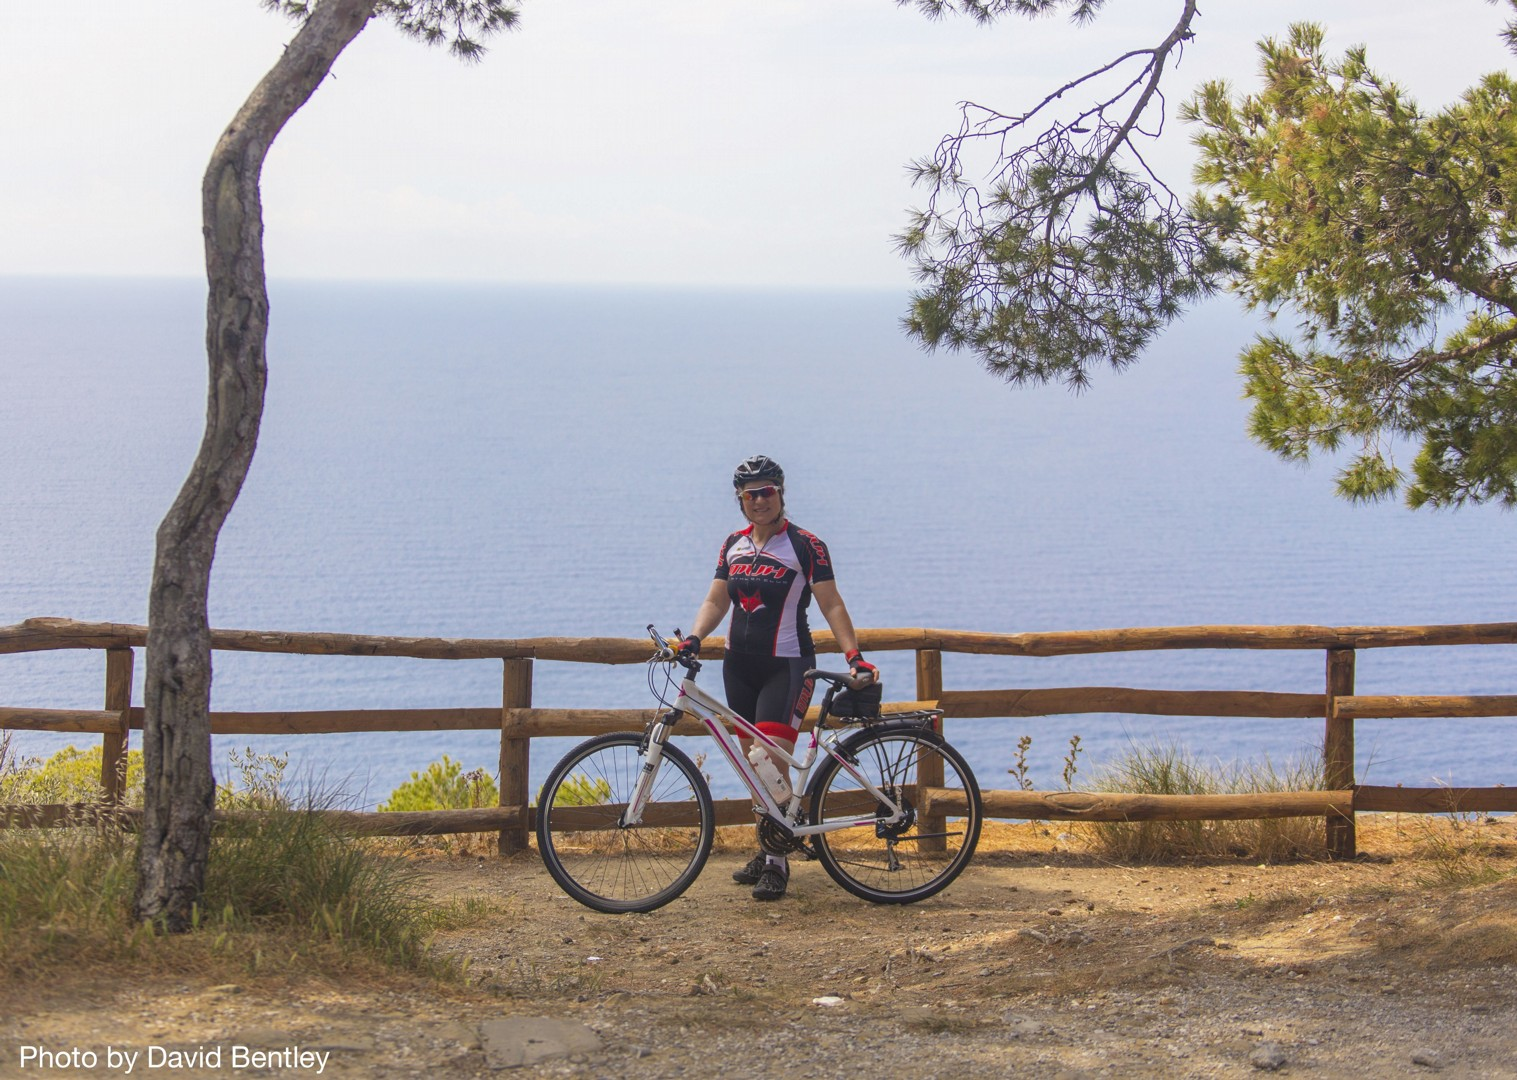 self-guided-cycling-holiday-in-italy-amalfi-coast-and-cilento-at-your-own-pace.jpg - Italy - Cilento and The Amalfi Coast - Self-Guided Leisure Cycling Holiday - Italia Leisure and Family Cycling